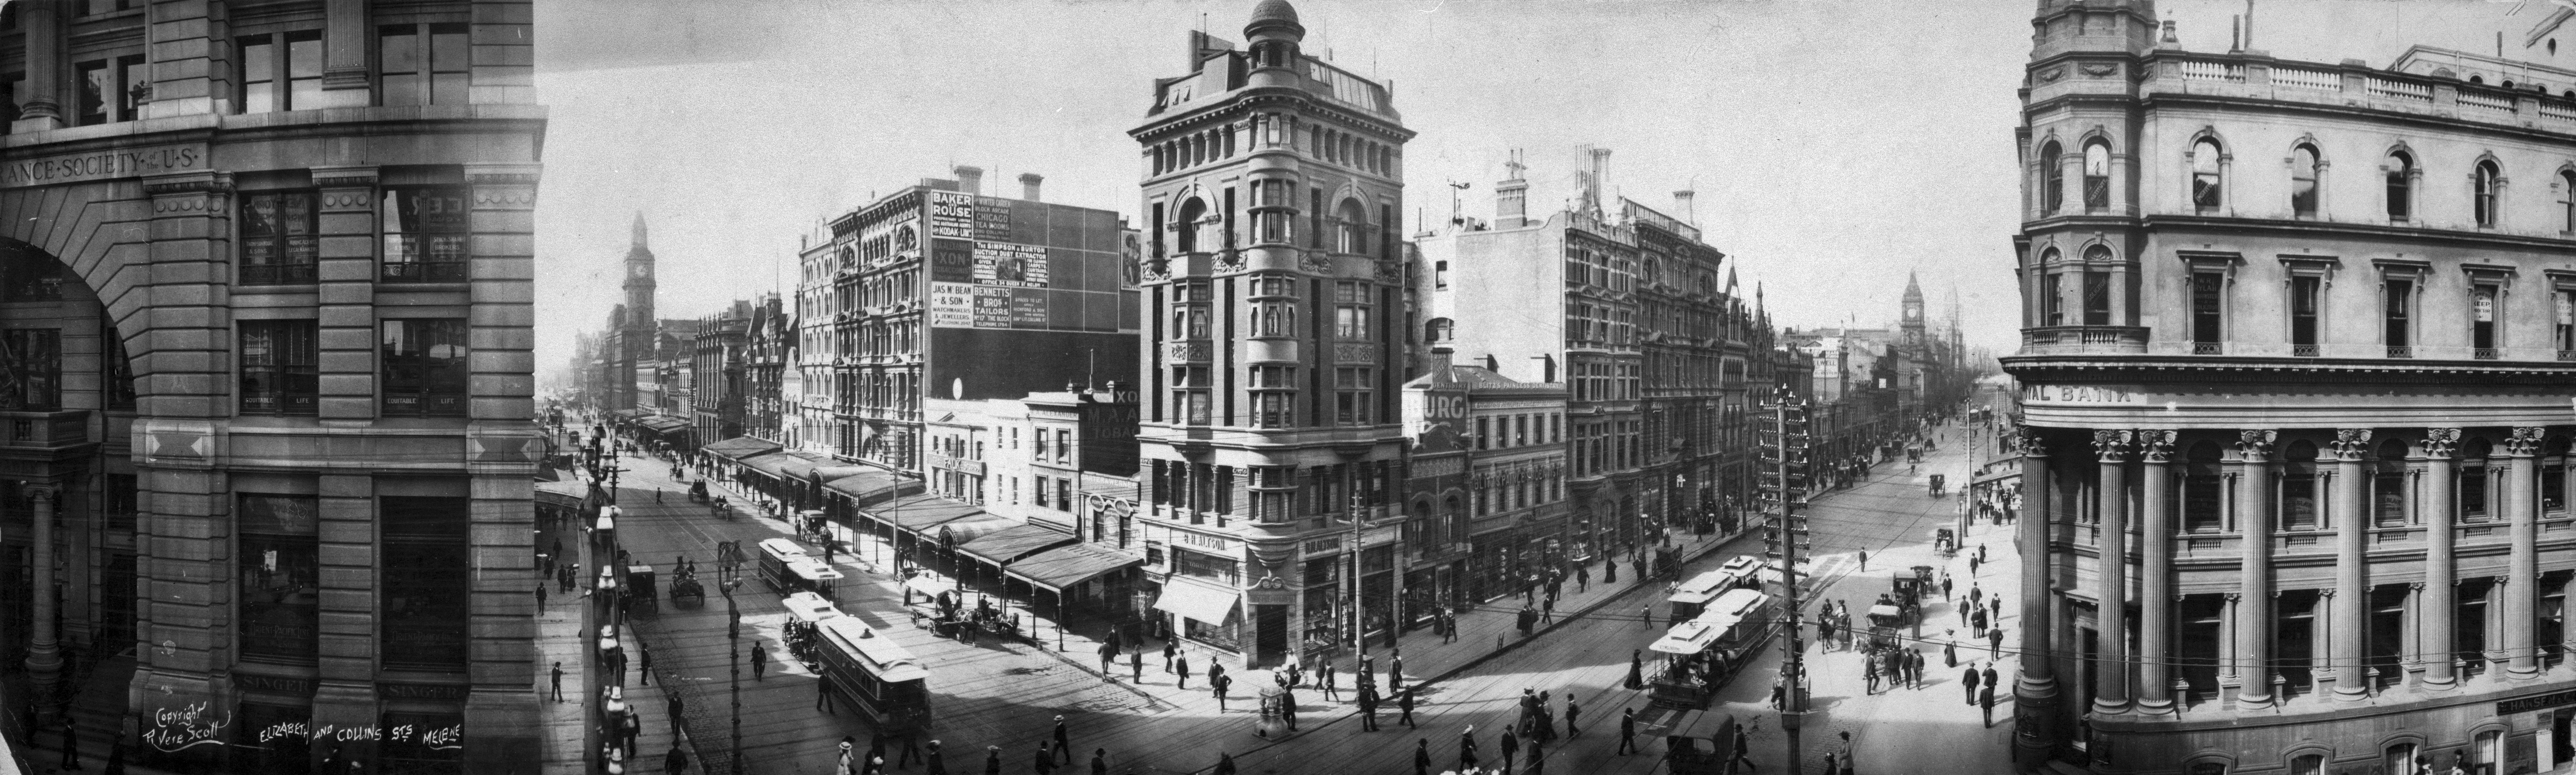 Panoramic view of the corner of Collins and Elizabeth Street, Melbourne